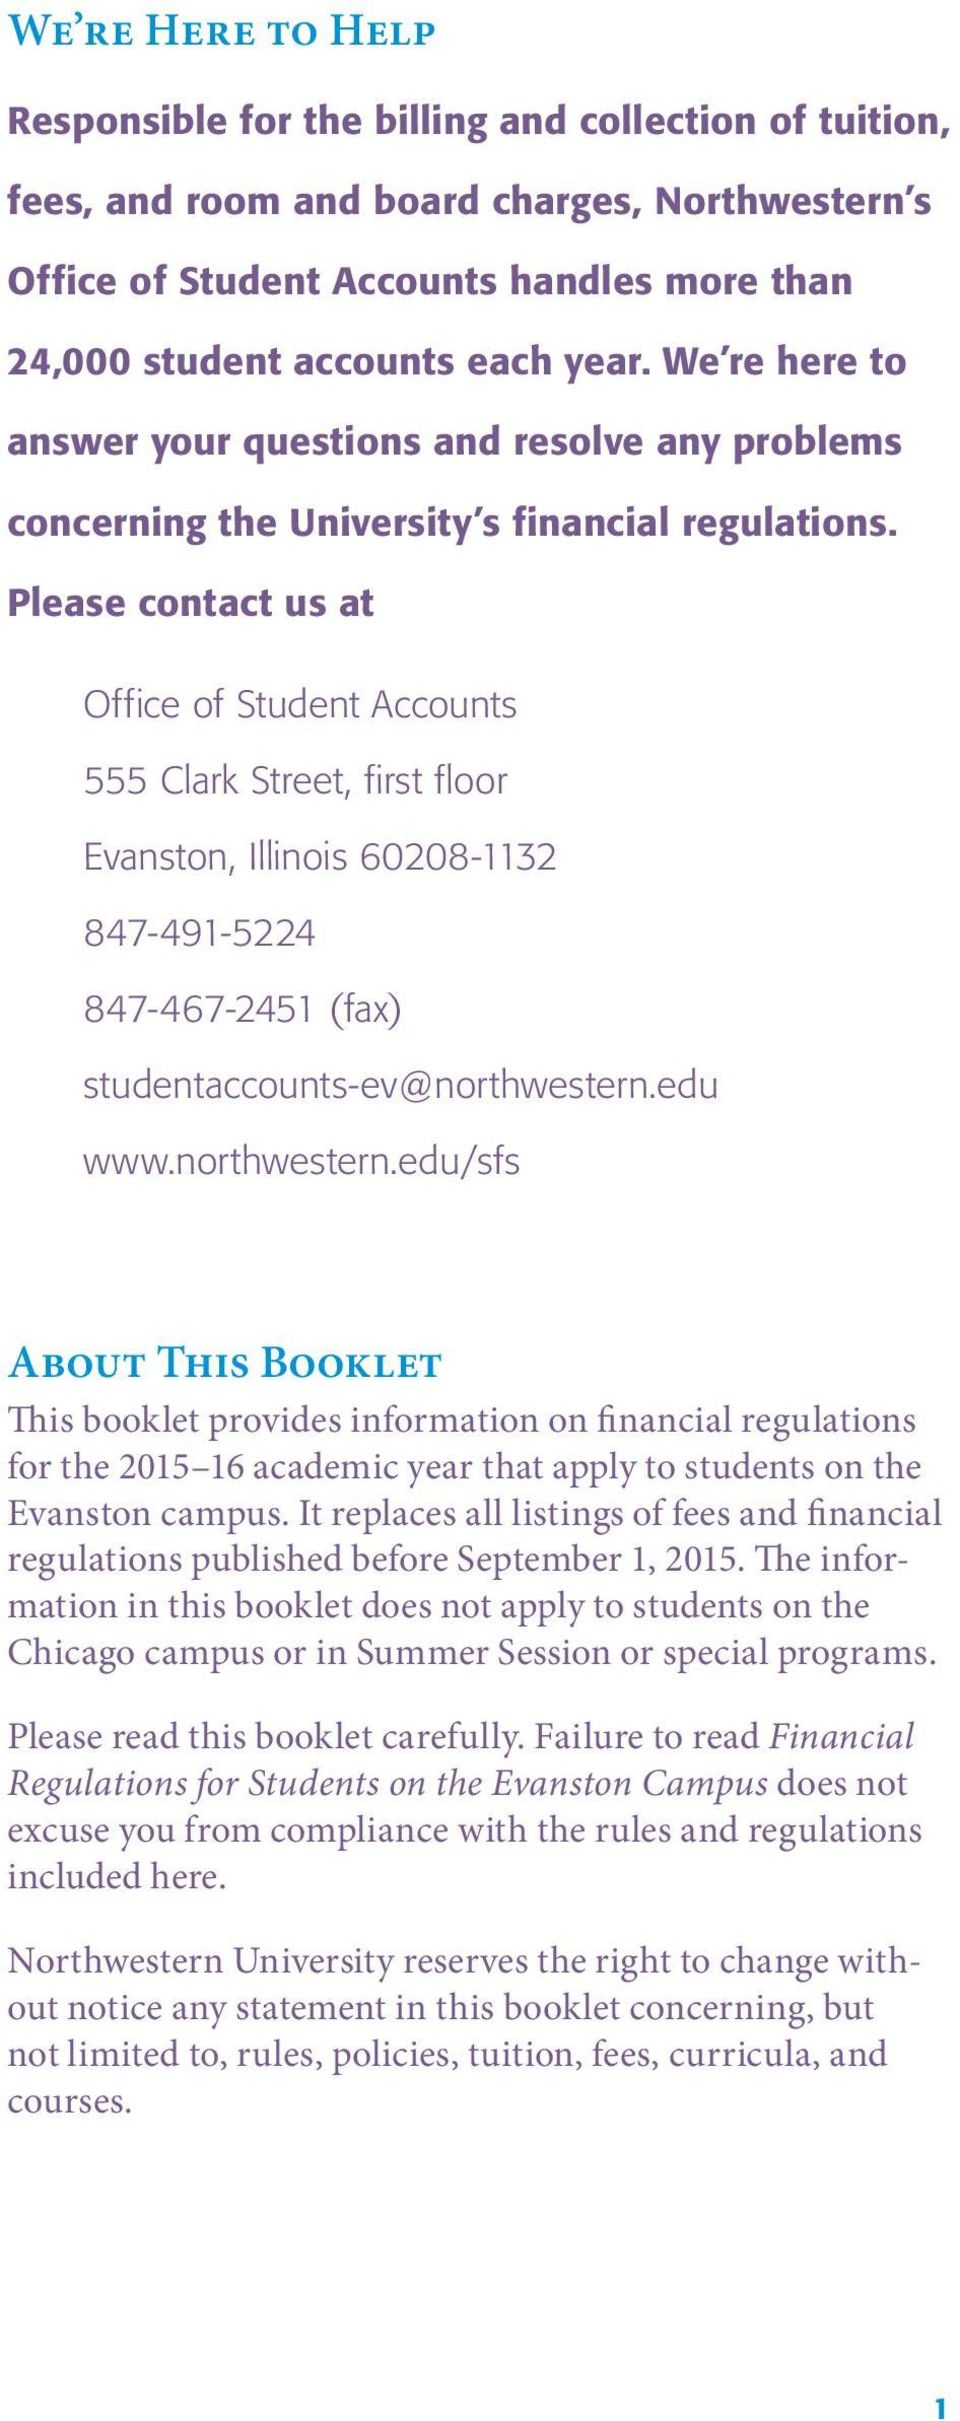 Please contact us at Office of Student Accounts 555 Clark Street, first floor Evanston, Illinois 60208-1132 847-491-5224 847-467-2451 (fax) studentaccounts-ev@northwestern.